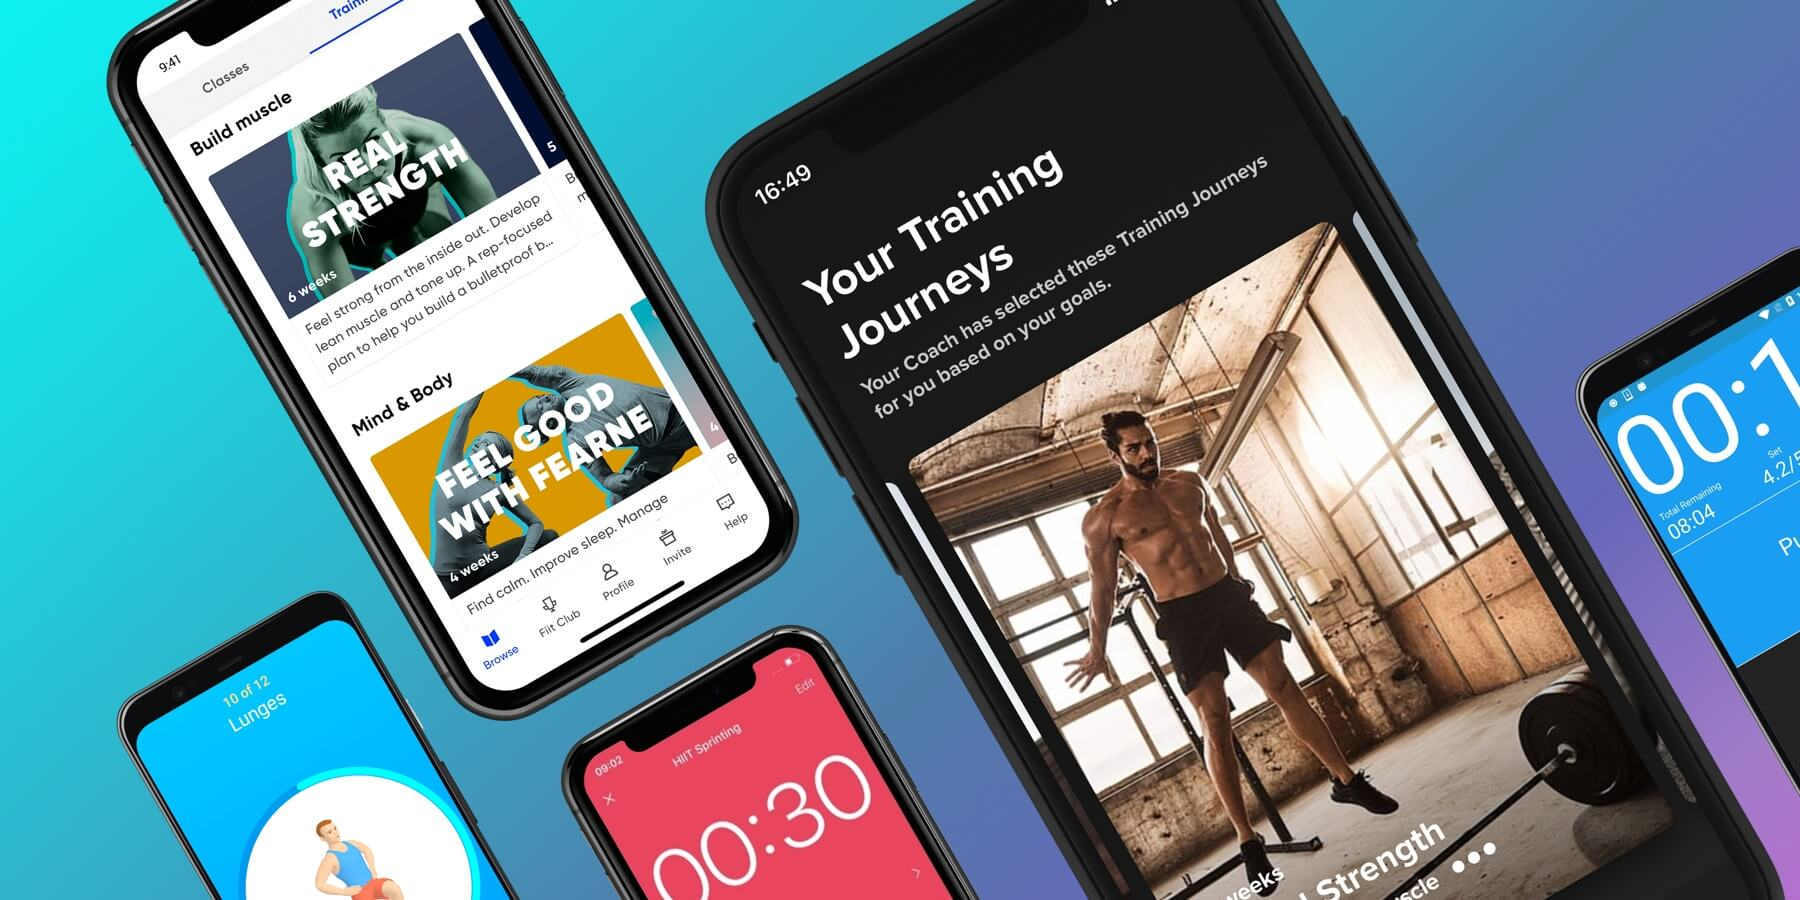 Best high-intensity interval training workout apps